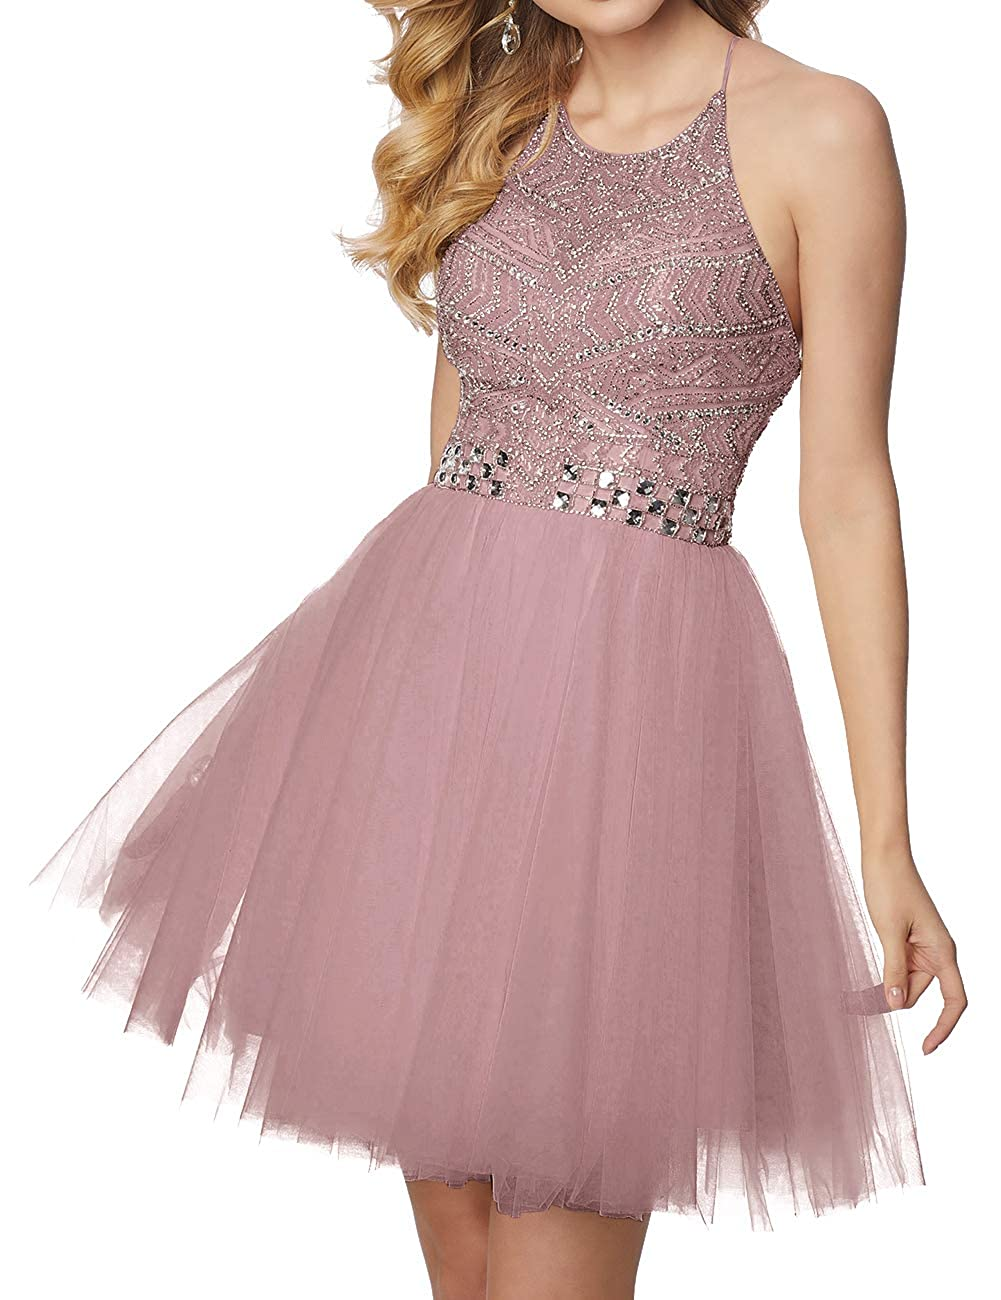 Dusty_pink Short Homecoming Dresses Tulle Halter Cocktail Prom Gowns Beads Formal Evening Party Dress